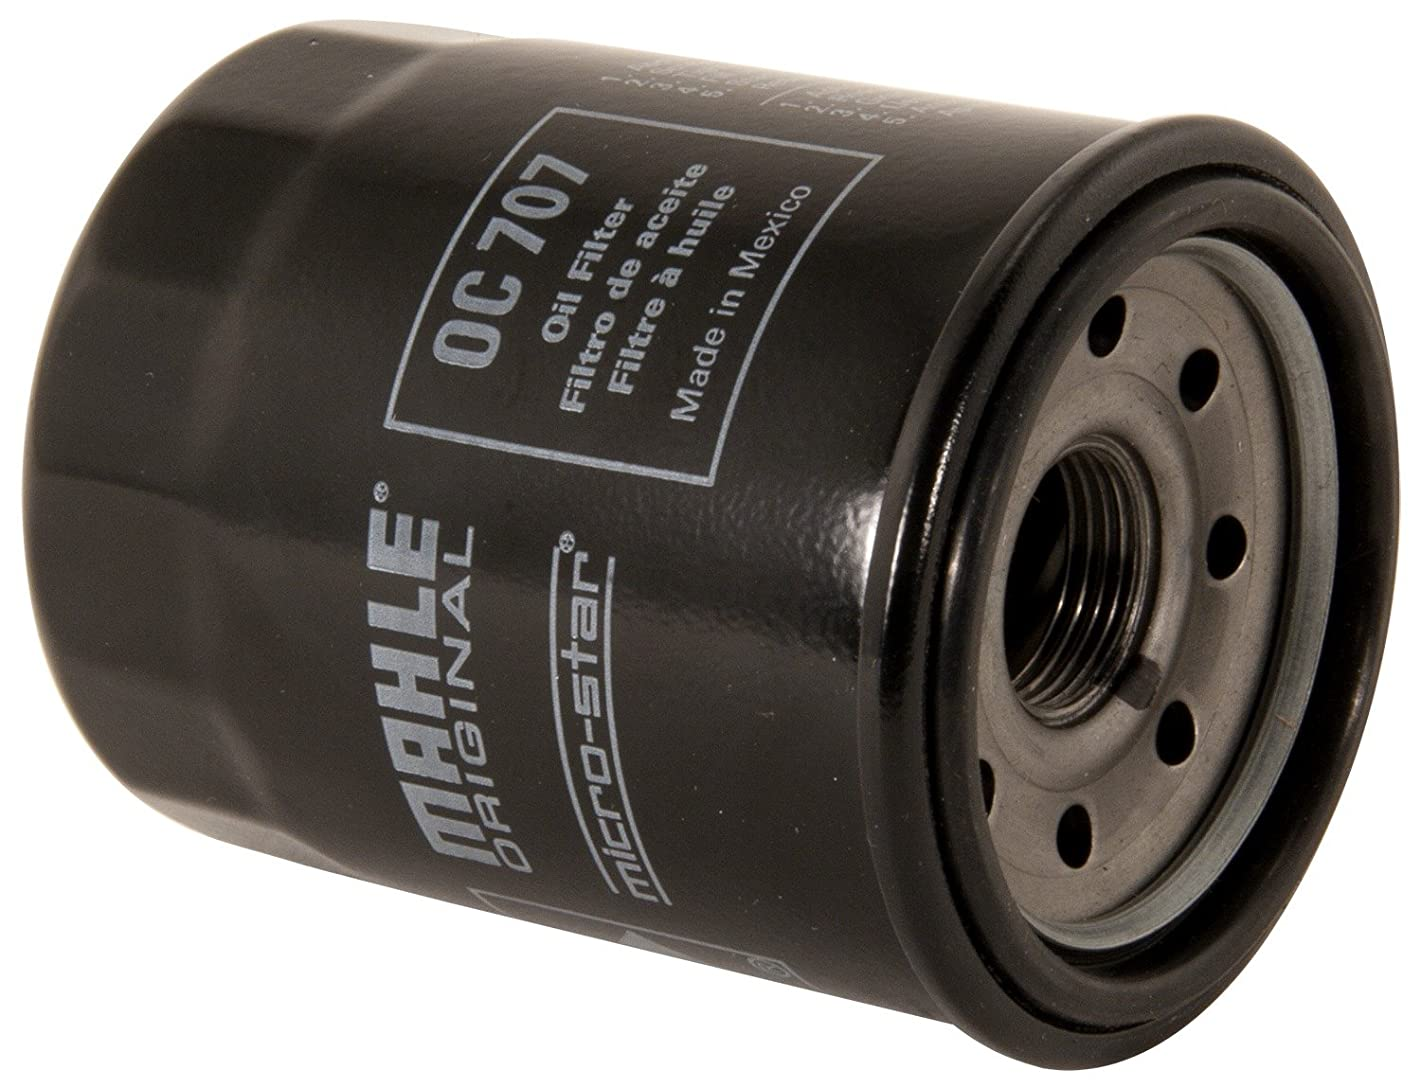 MAHLE Original OC 707 Oil Filter